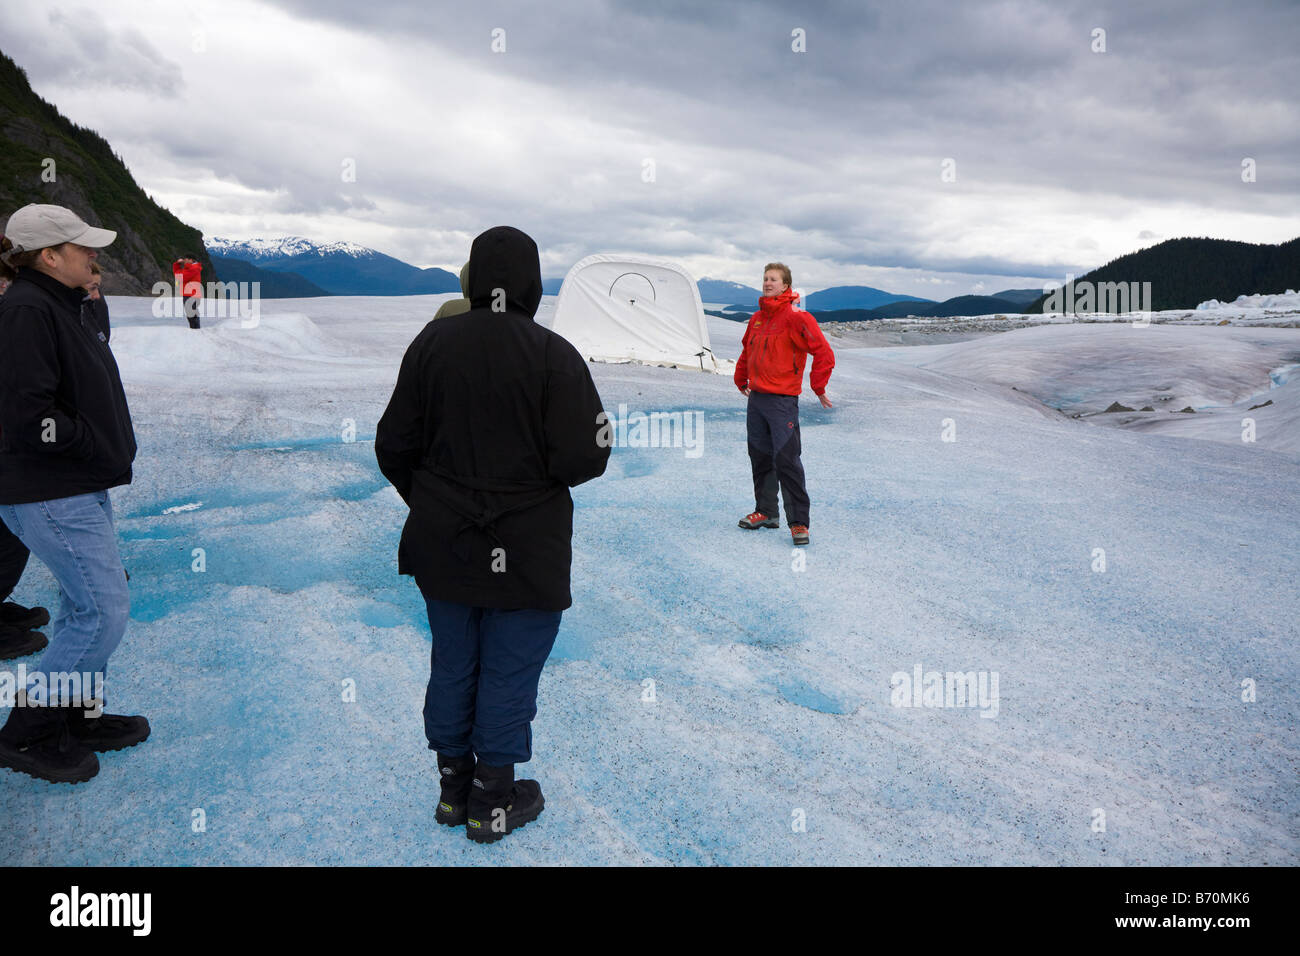 Tour guides at base camp on top of Mendenhall Glacier near Juneau Alaska teach and entertain tourists. - Stock Image